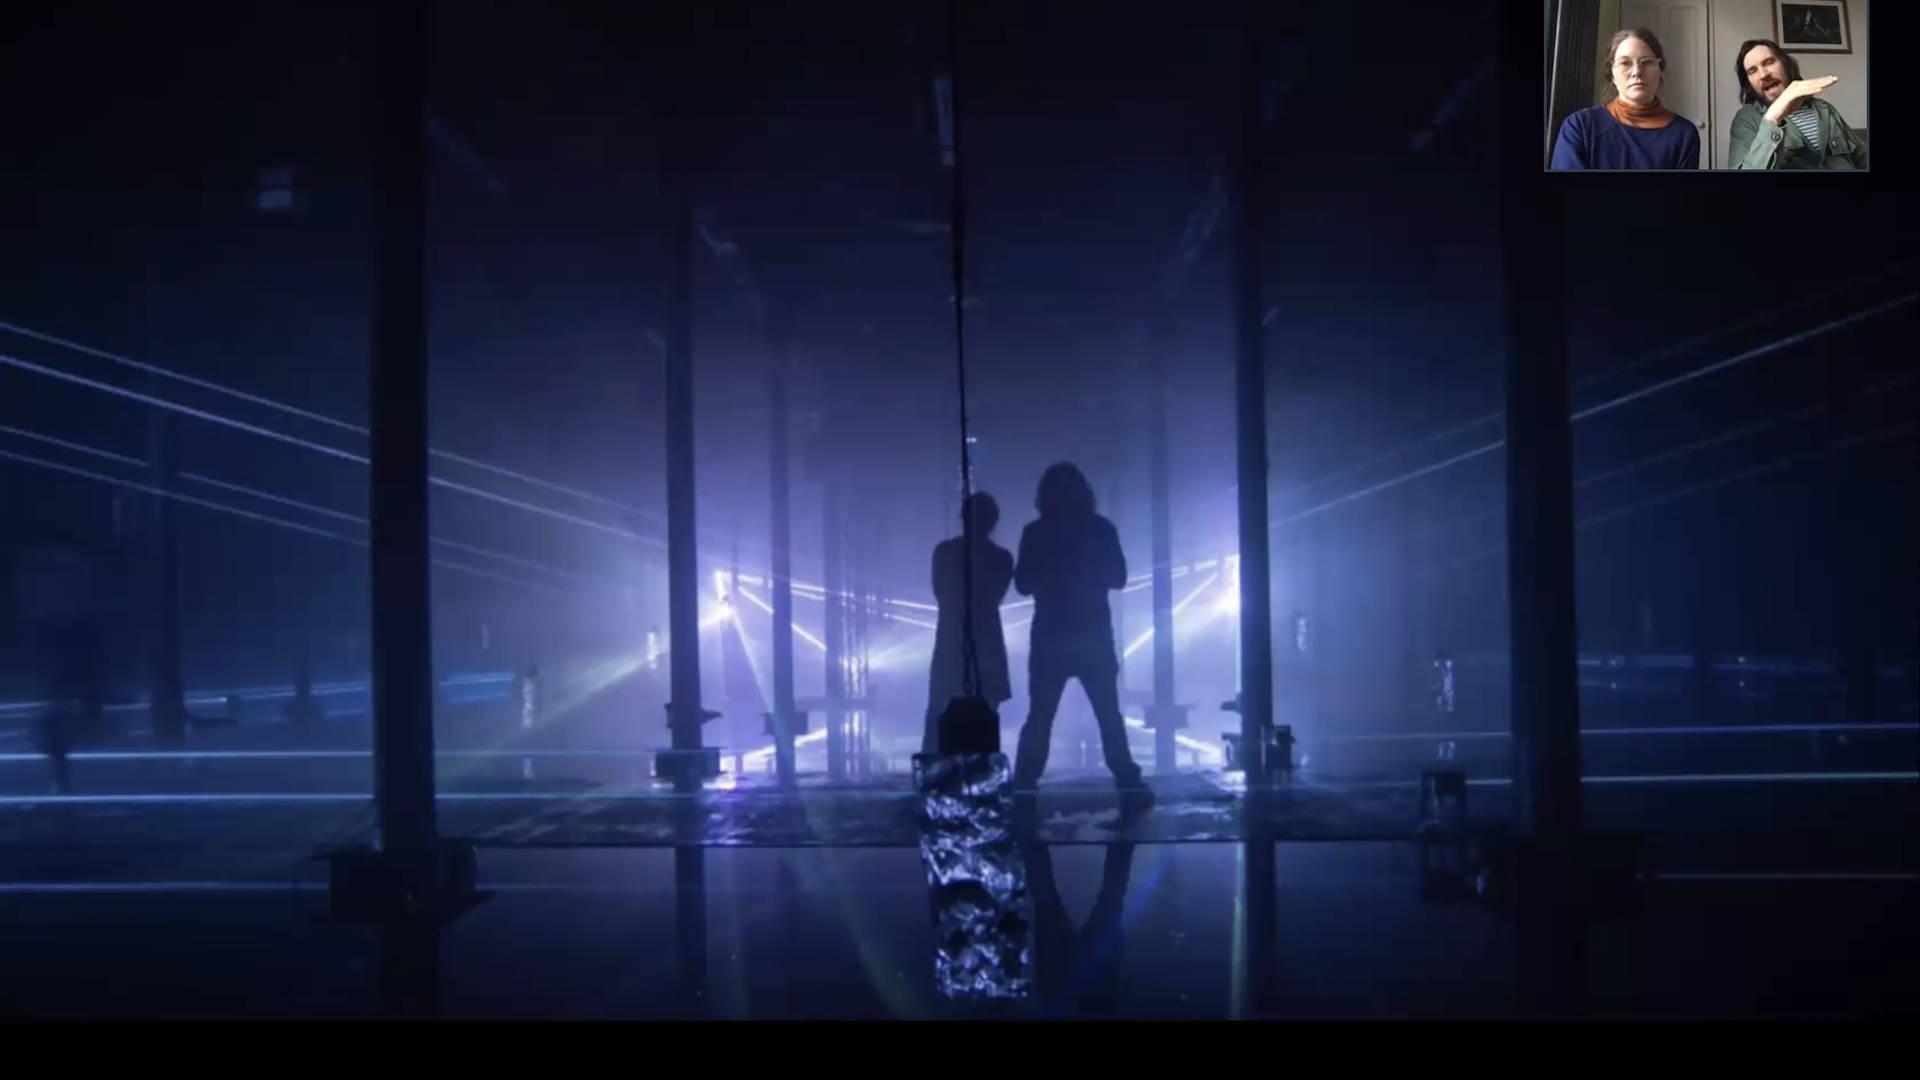 Two silhouettes with purple LED light beams around them.